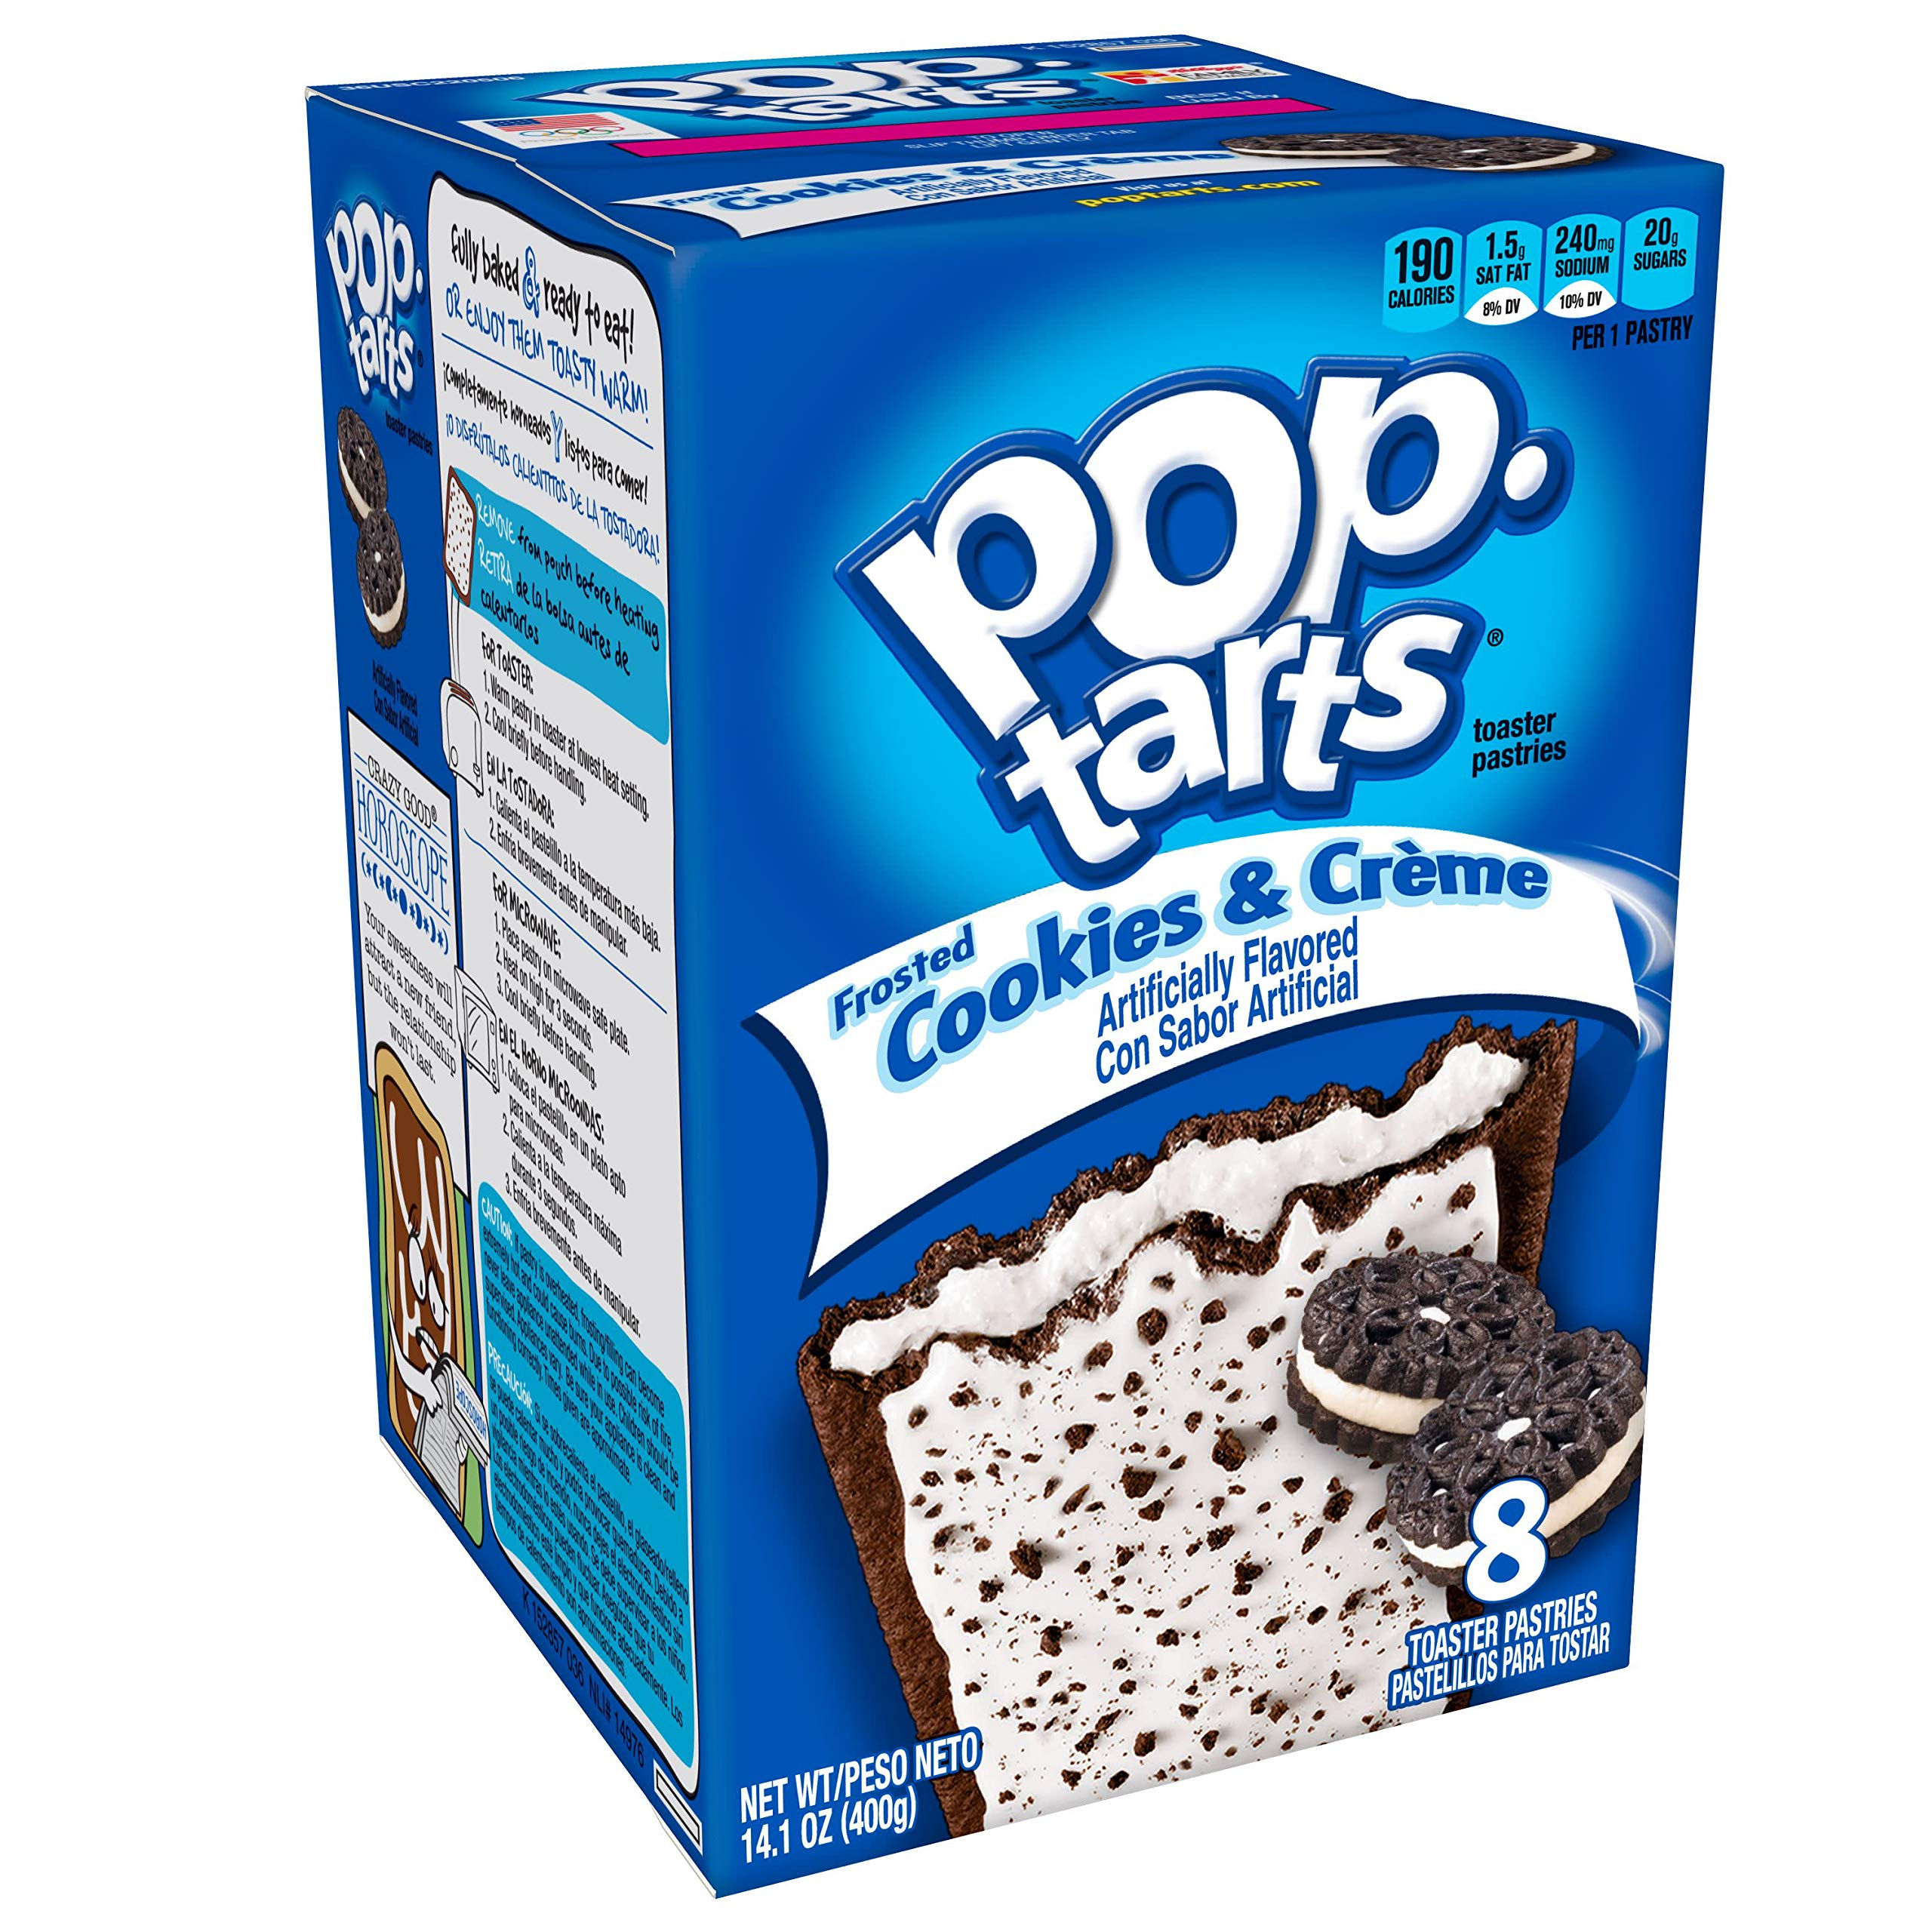 Pop-Tarts Breakfast Toaster Pastries, Frosted Cookies and Crème Flavored, Bulk Size, 96 Count (Pack of 12, 14.1 oz Boxes) by Pop-Tarts (Image #1)